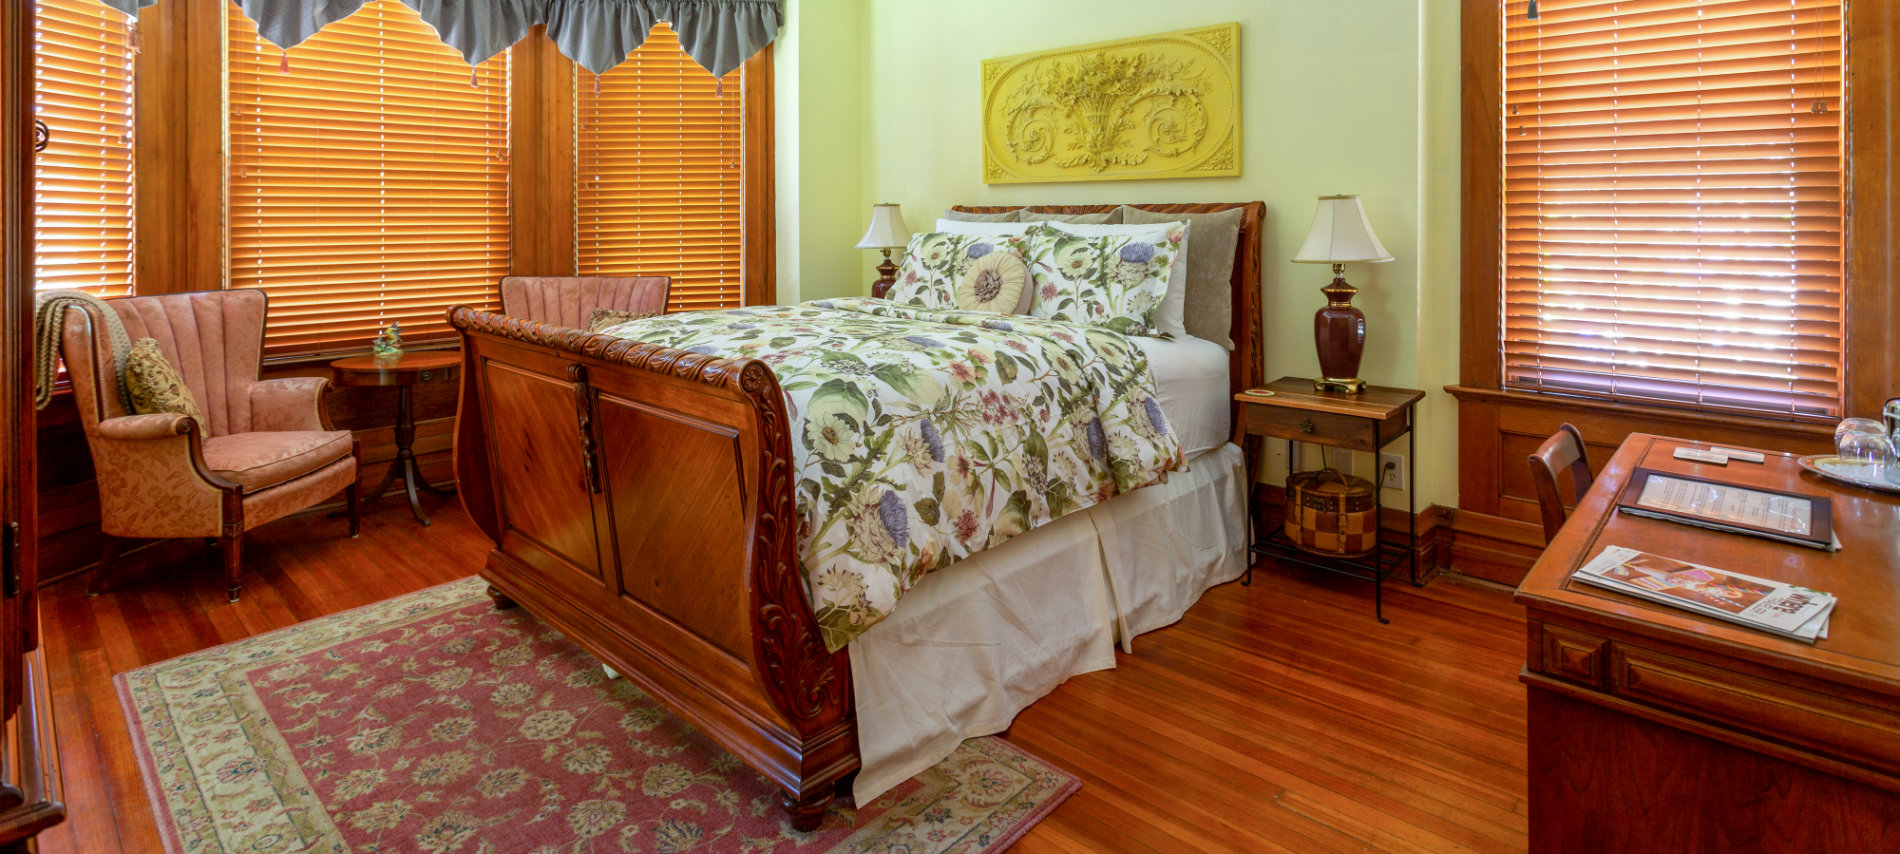 Sleigh bed with floral comforter, two wingback chairs in front of bay window